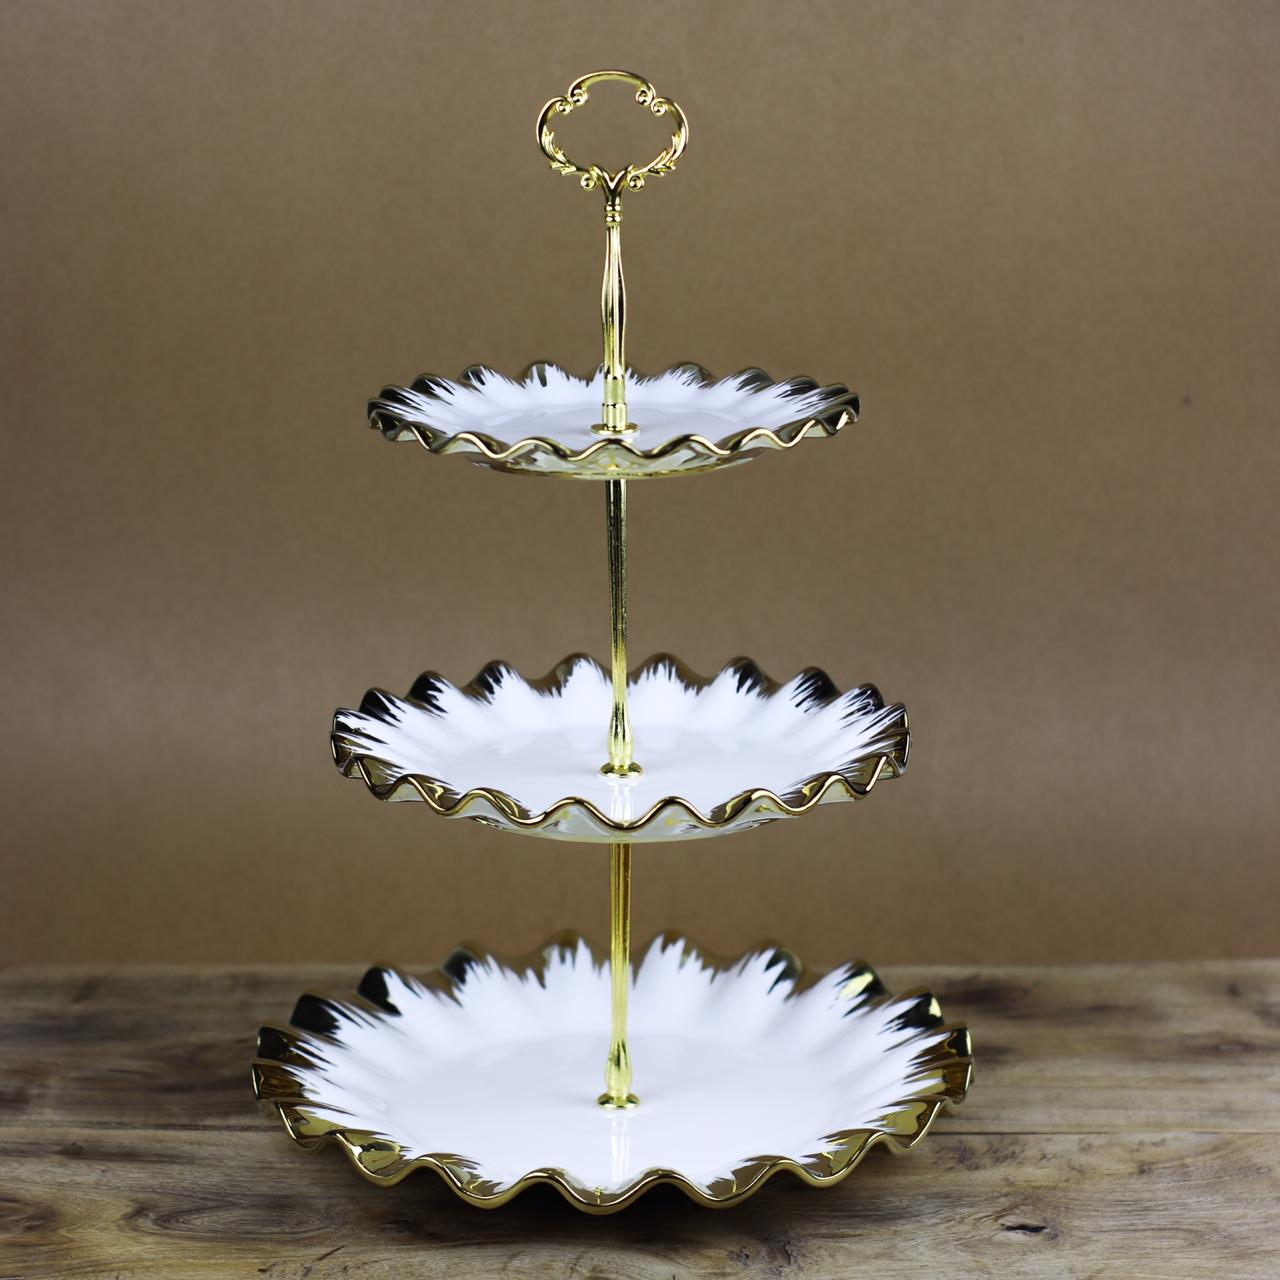 3 Portion Cupcake plate with golden borders